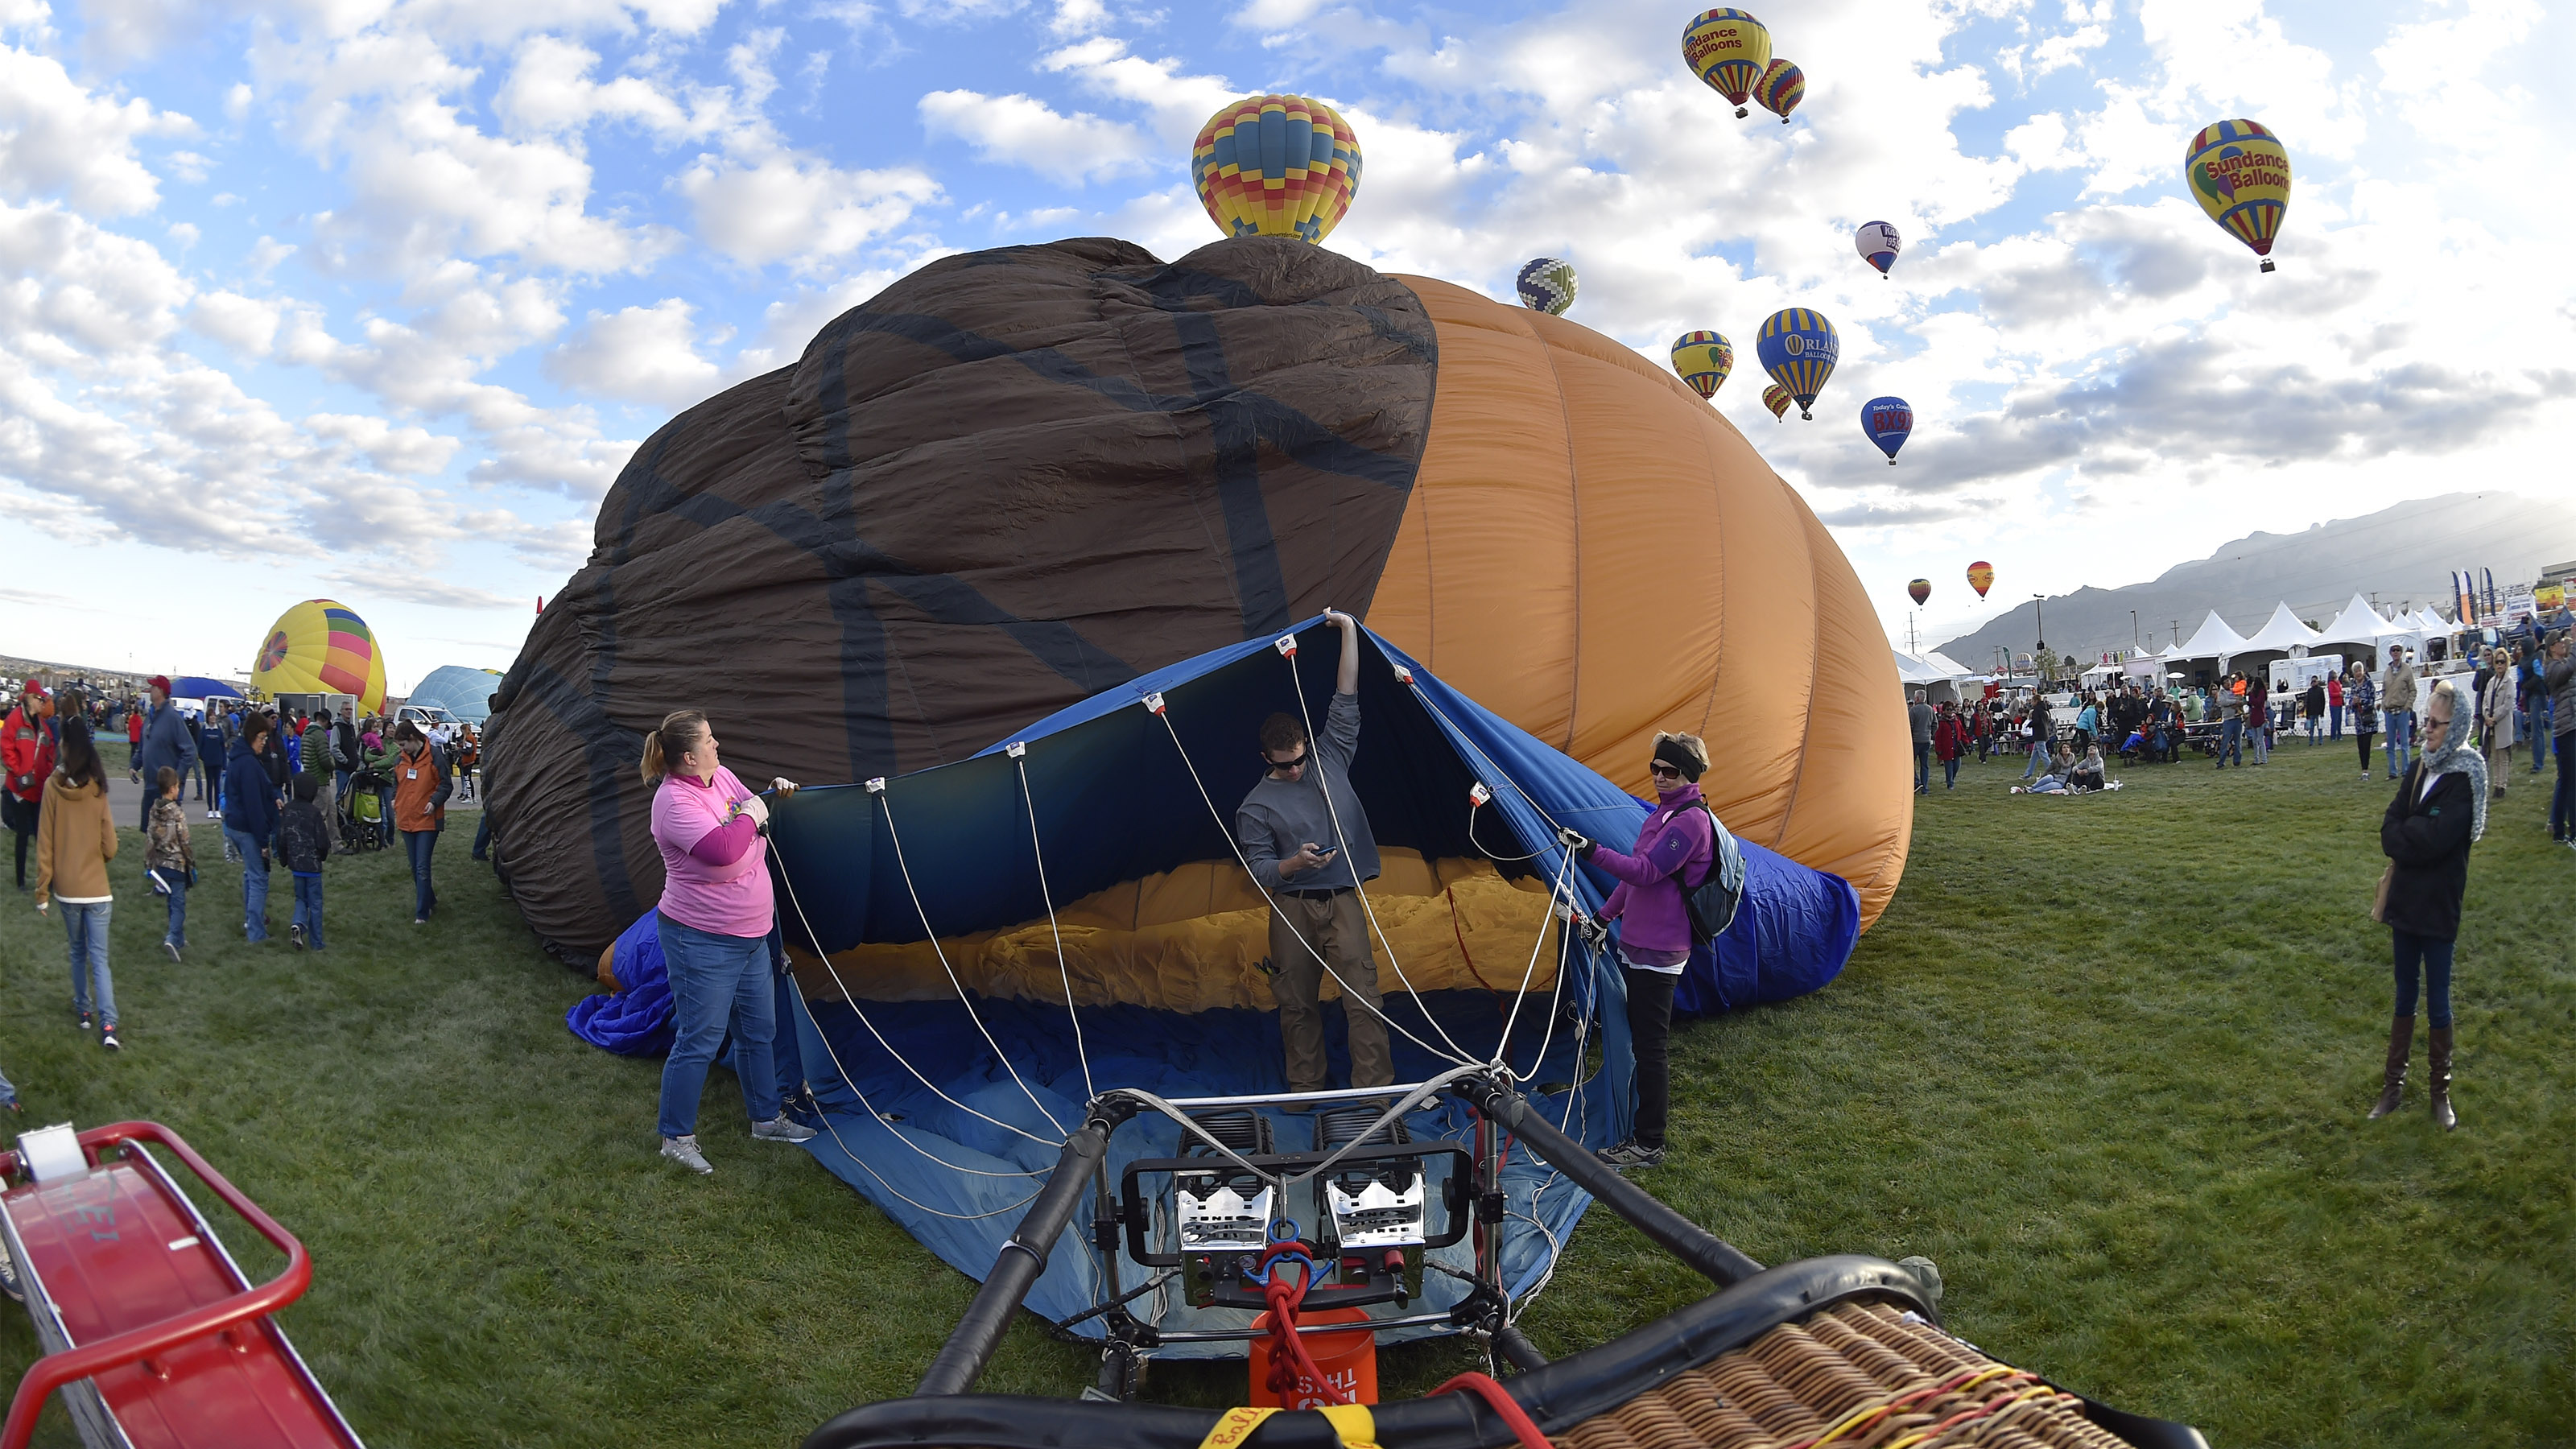 Ground crew members help inflate a balloon during the 45th Albuquerque International Balloon Fiesta in Albuquerque, New Mexico. Photo by David Tulis.